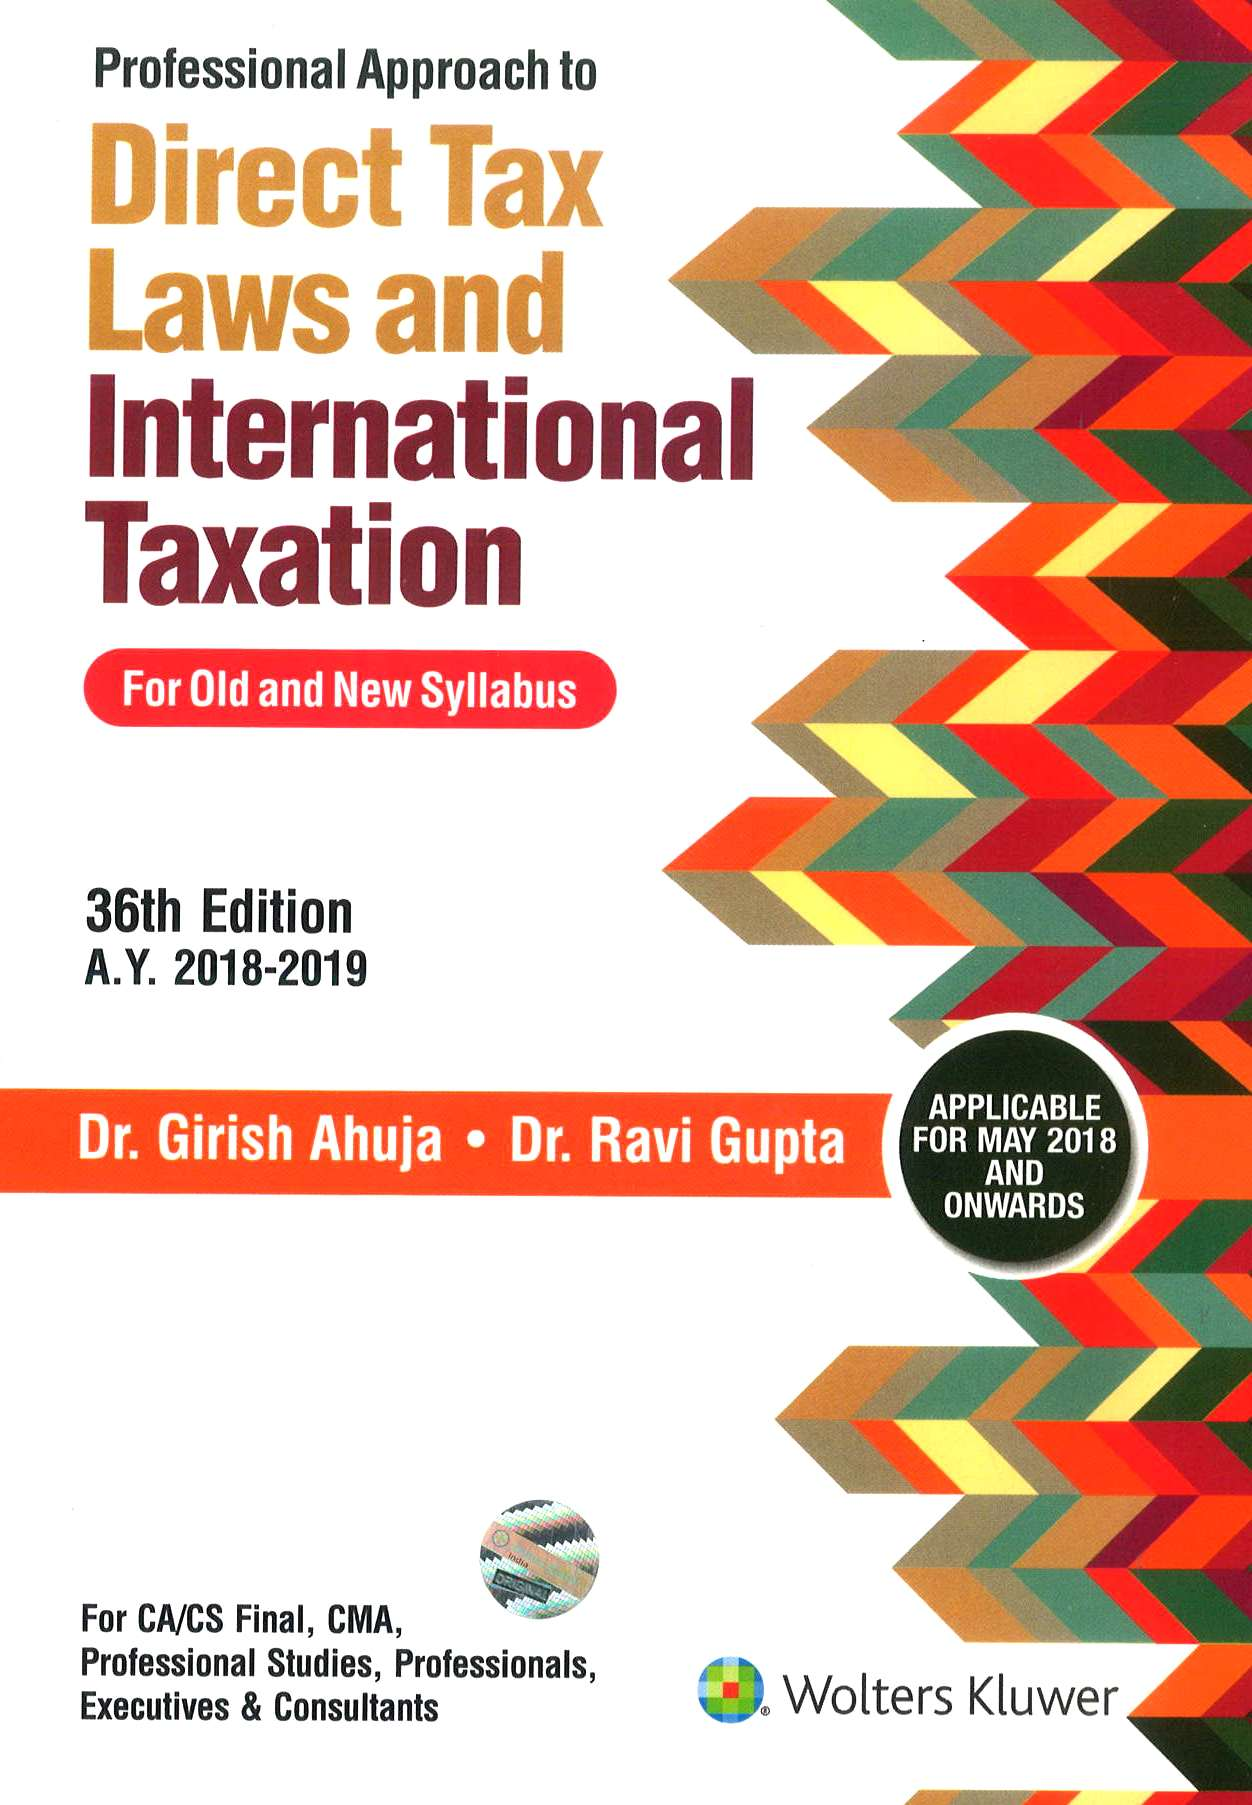 CCH Professional Approach to Direct Tax Laws and International Taxation for Old and New Syllabus for CA/CS/CMA Final By Dr Girish Ahuja Dr Ravi Gupta Applicable for May 2018 Exam 36th Edition December 2017